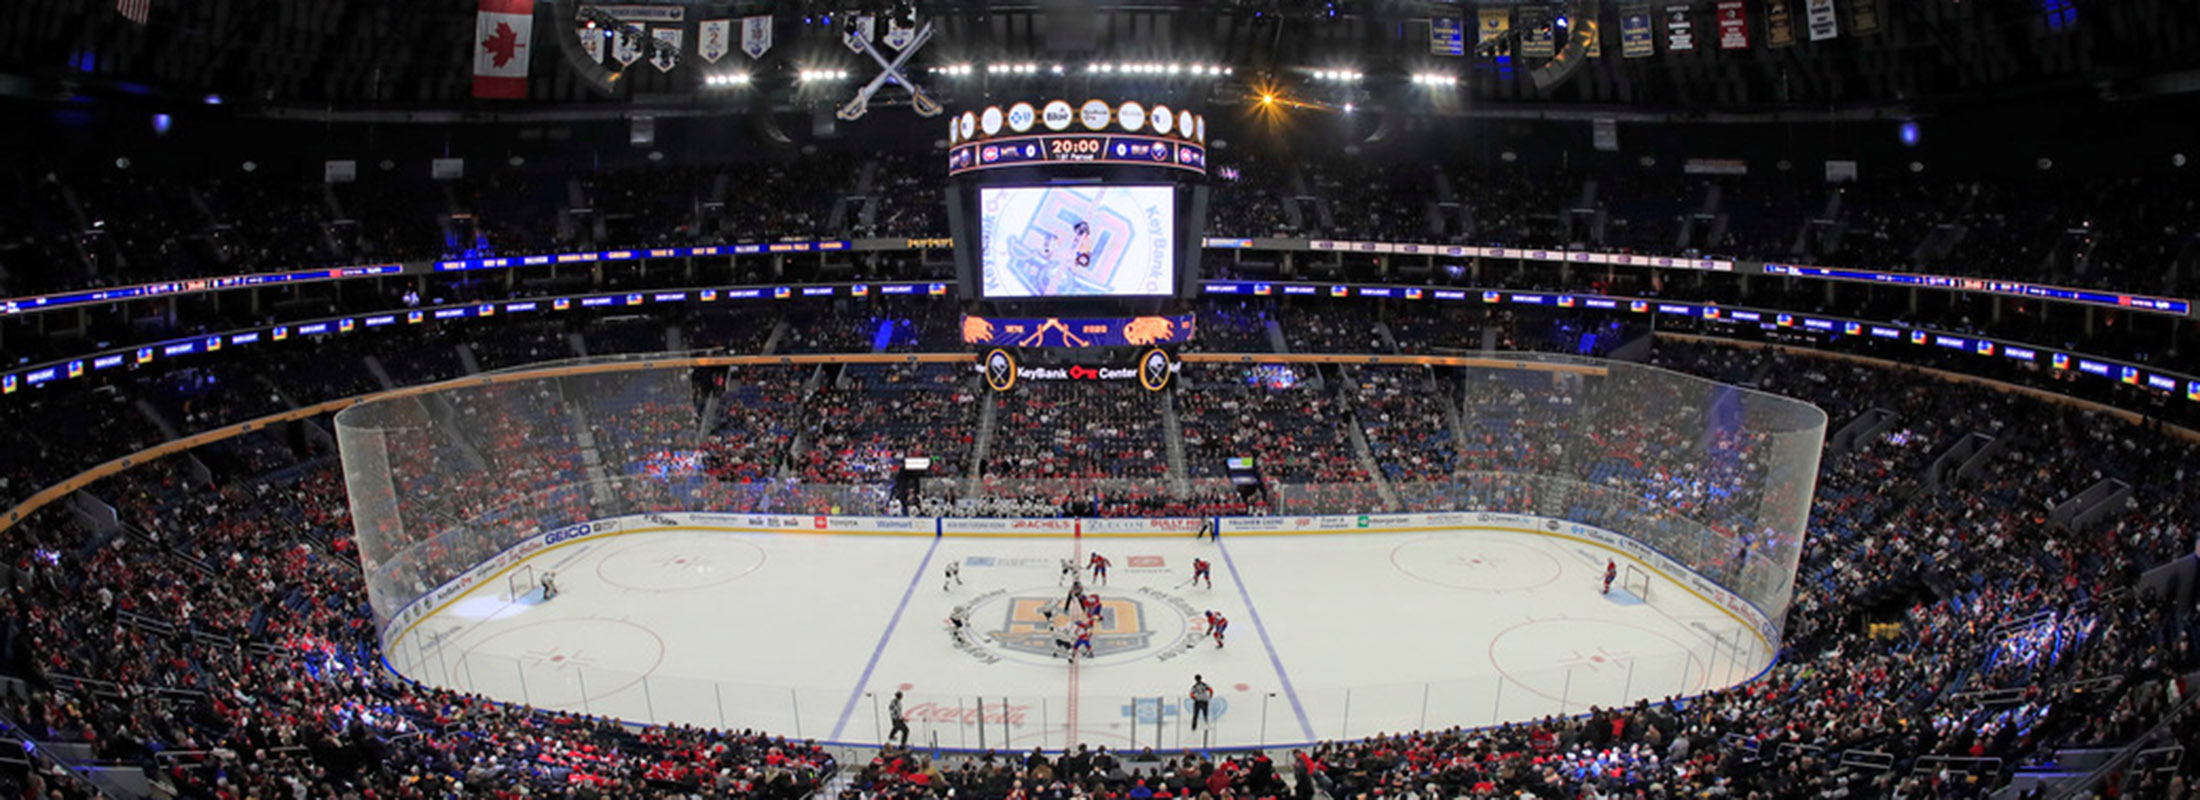 Sabres to alter ticket pricing model, increase prices